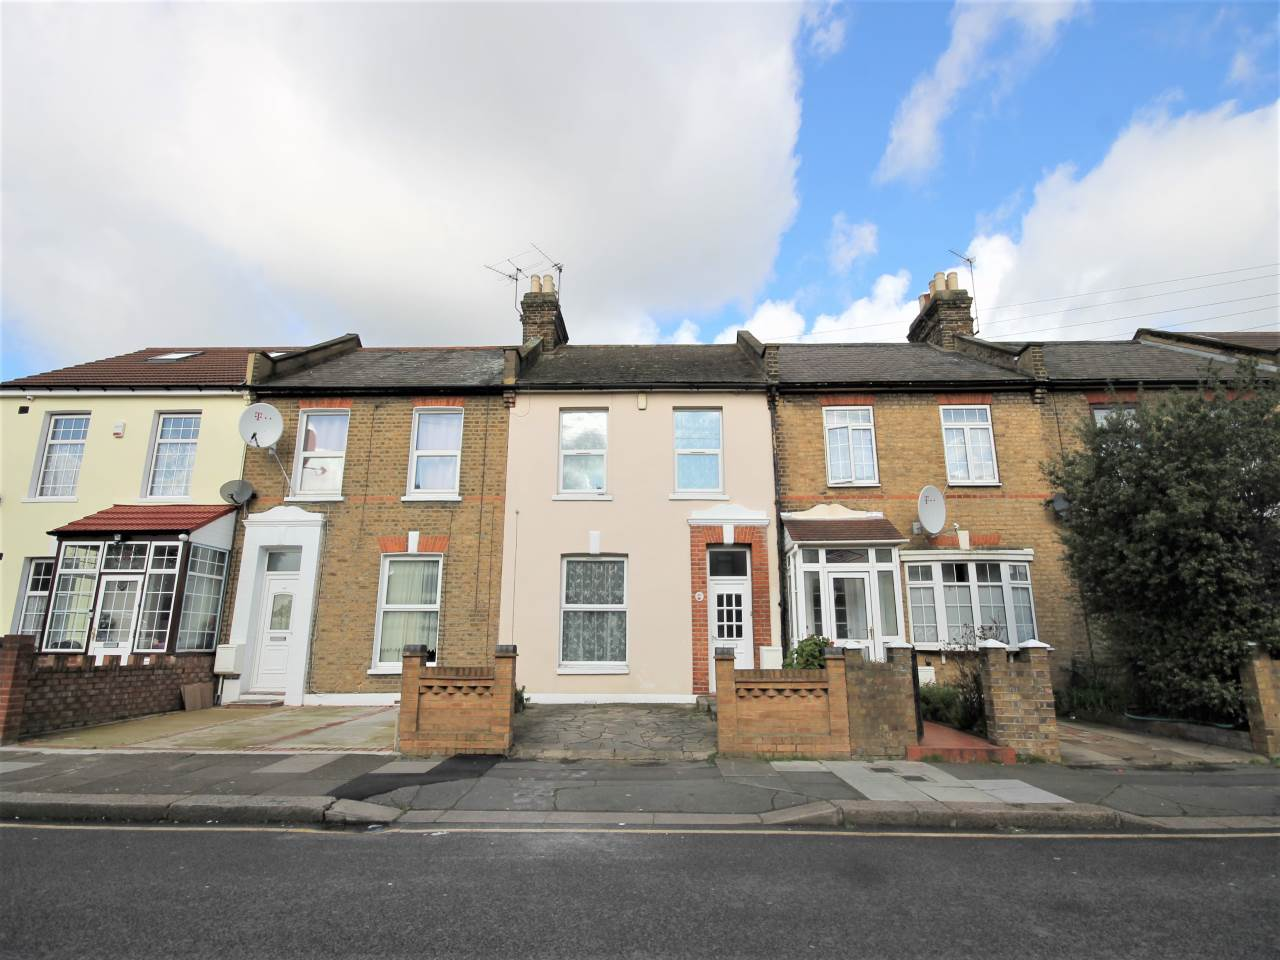 3 bed house to rent in Ilford - Property Image 1